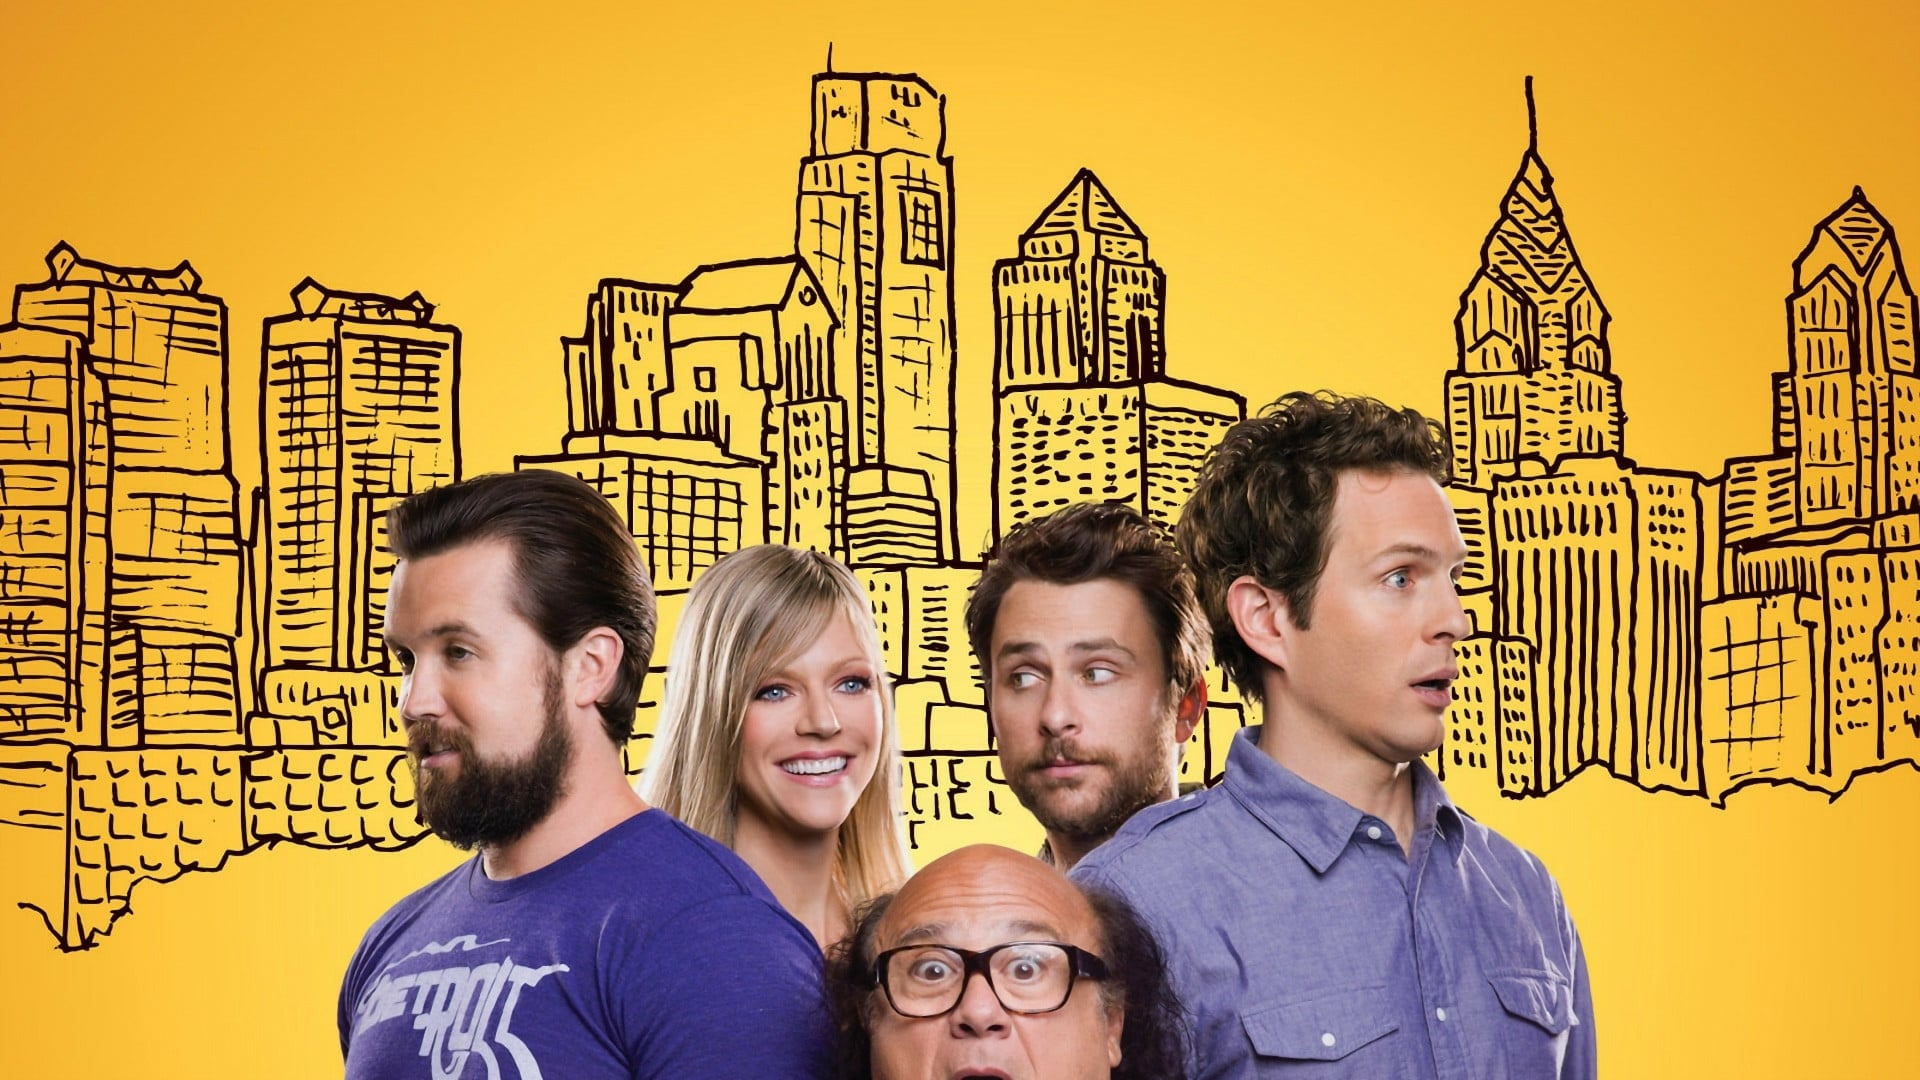 It's Always Sunny in Philadelphia - Season 0 Episode 52 : The Gang Does 100 Episodes